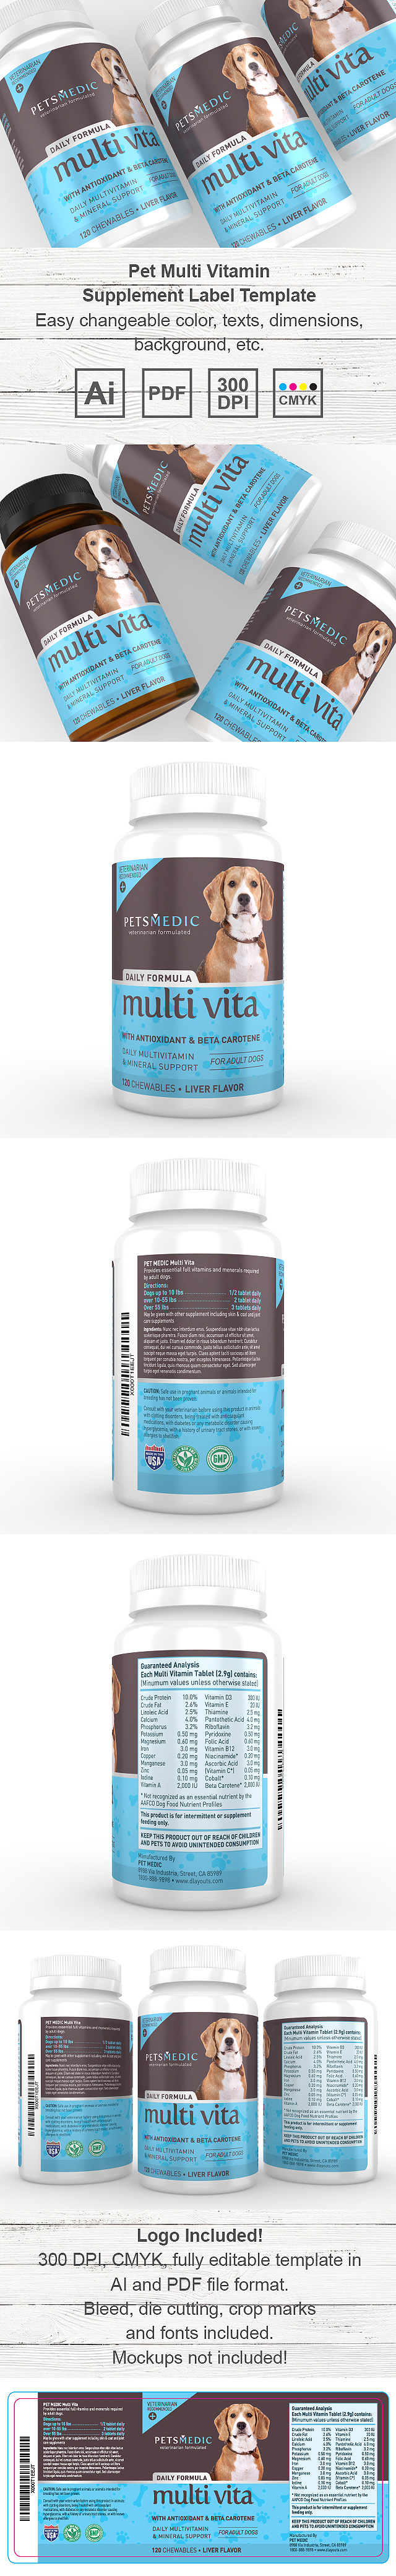 Pet Multi Vitamin Supplement Label Template